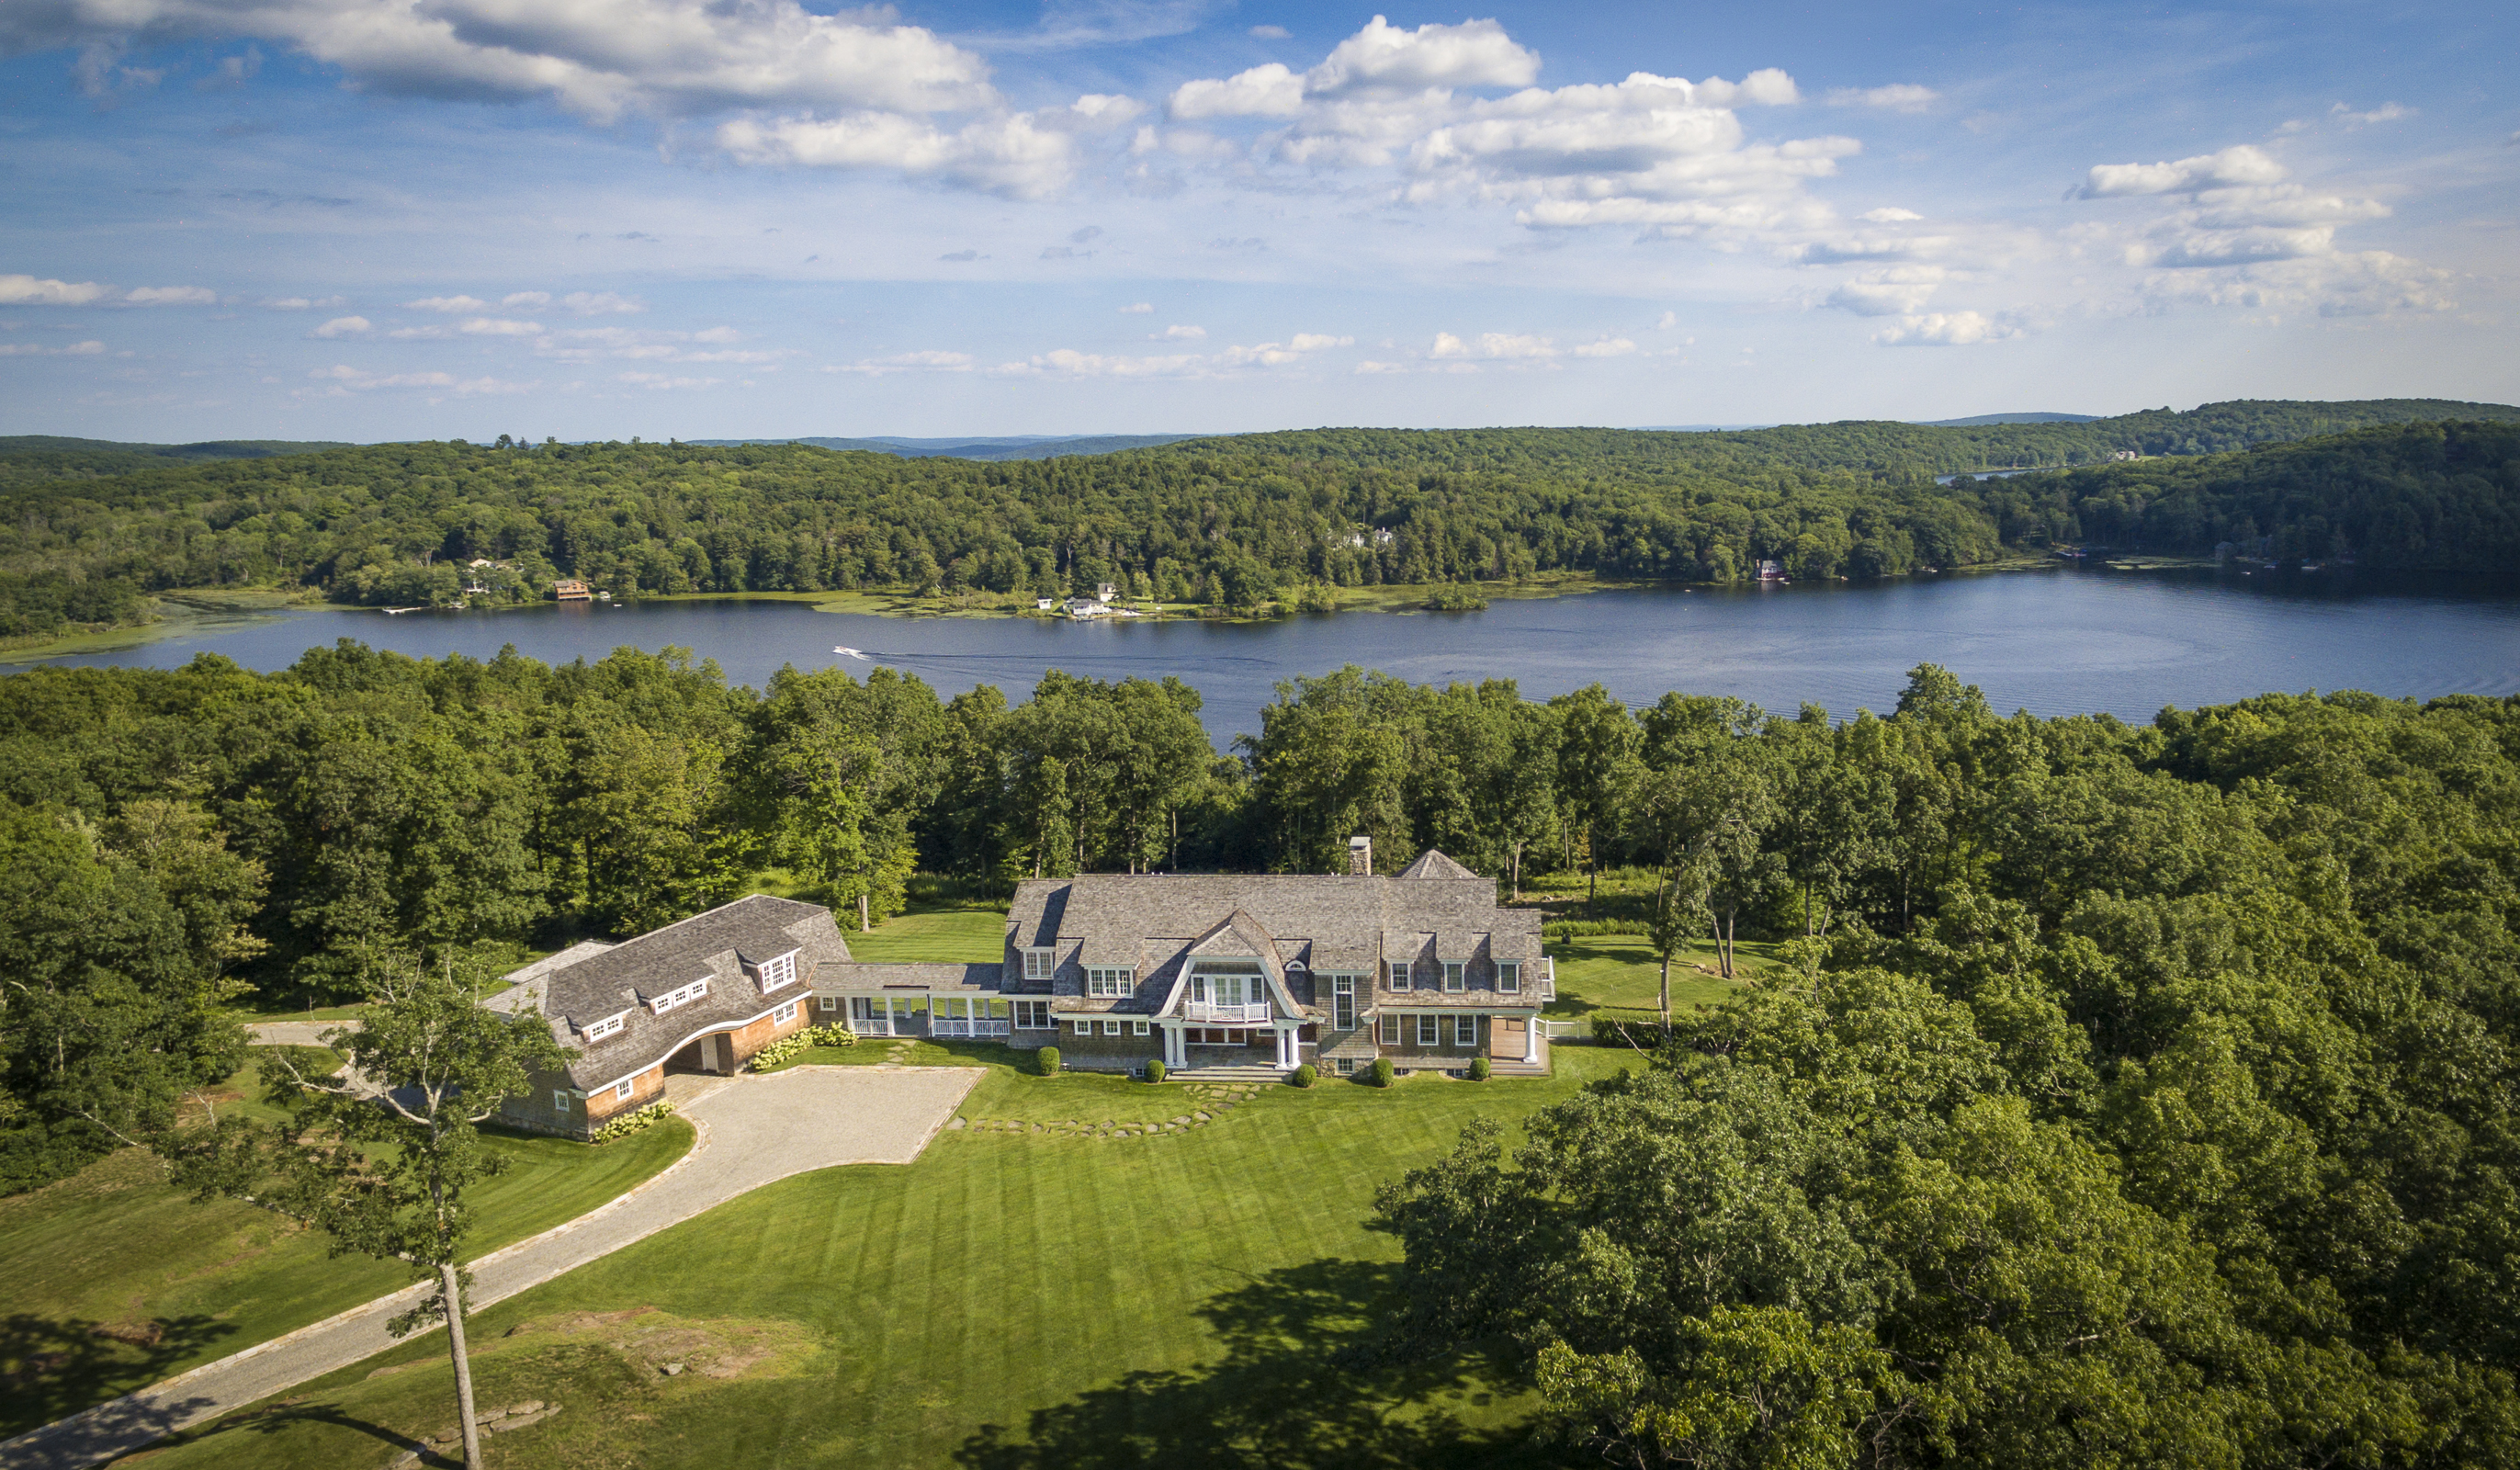 Single Family Home for Sale at New England Lake House 200 Kenmont Rd Kent, Connecticut, 06757 United States